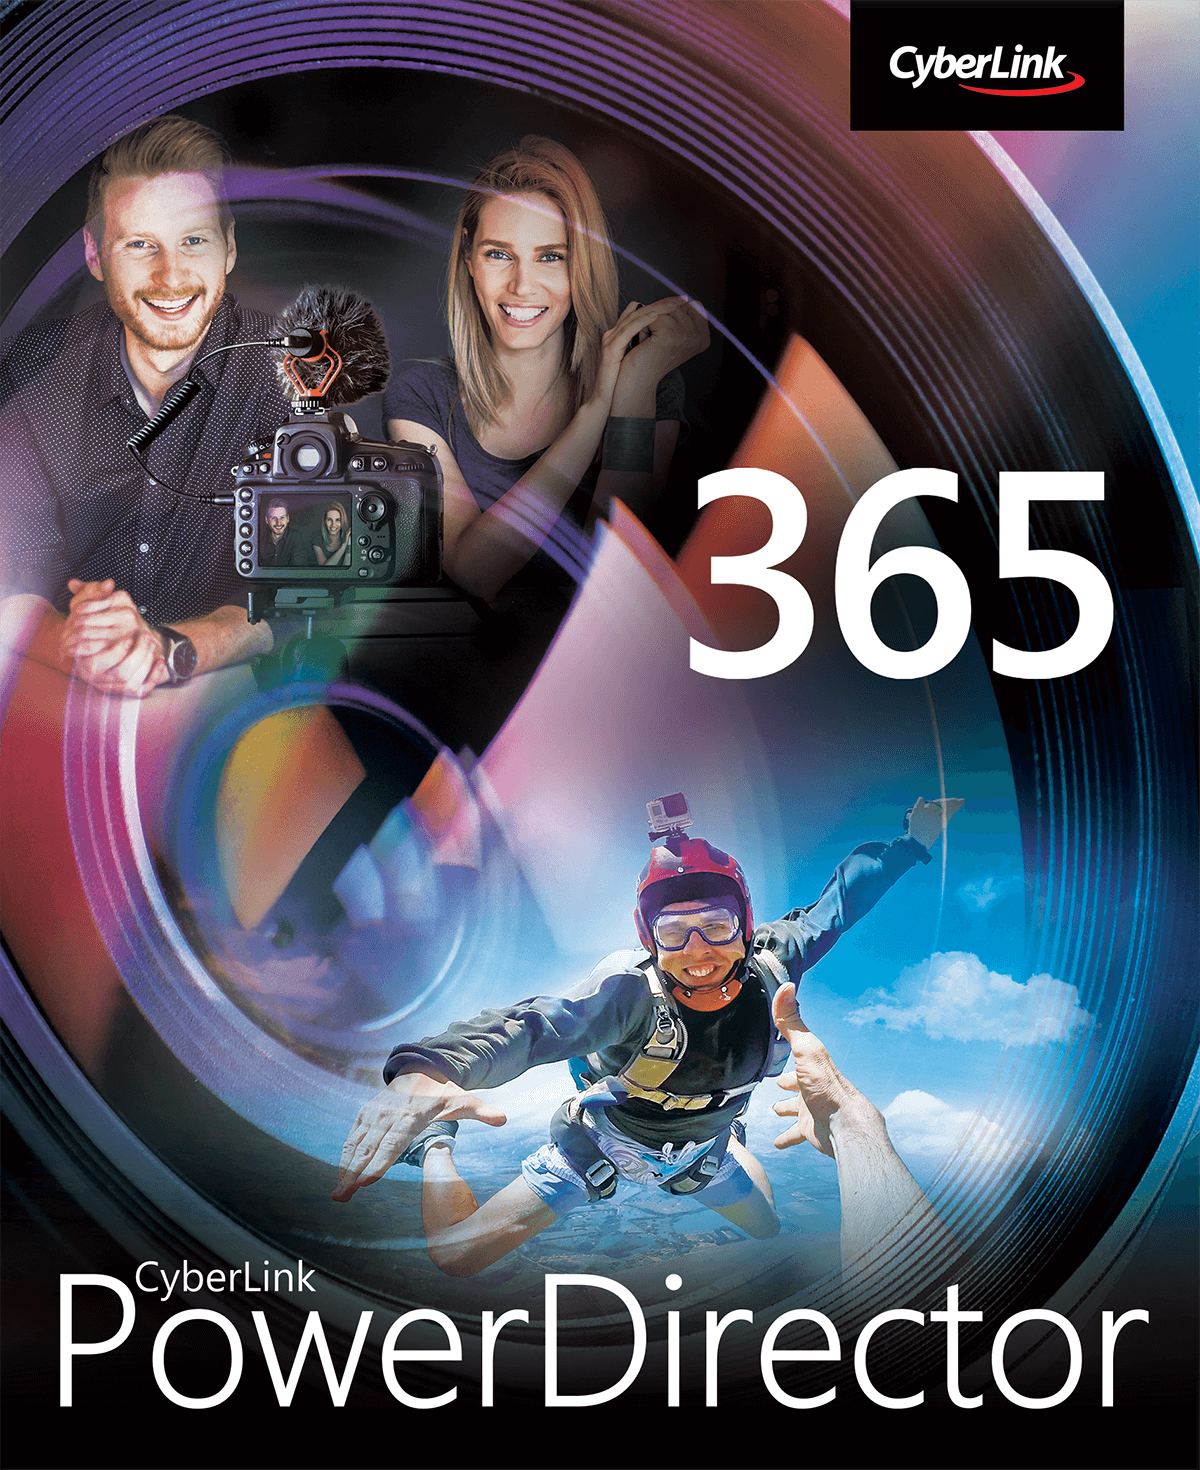 PowerDirector 365 Monthly Plan